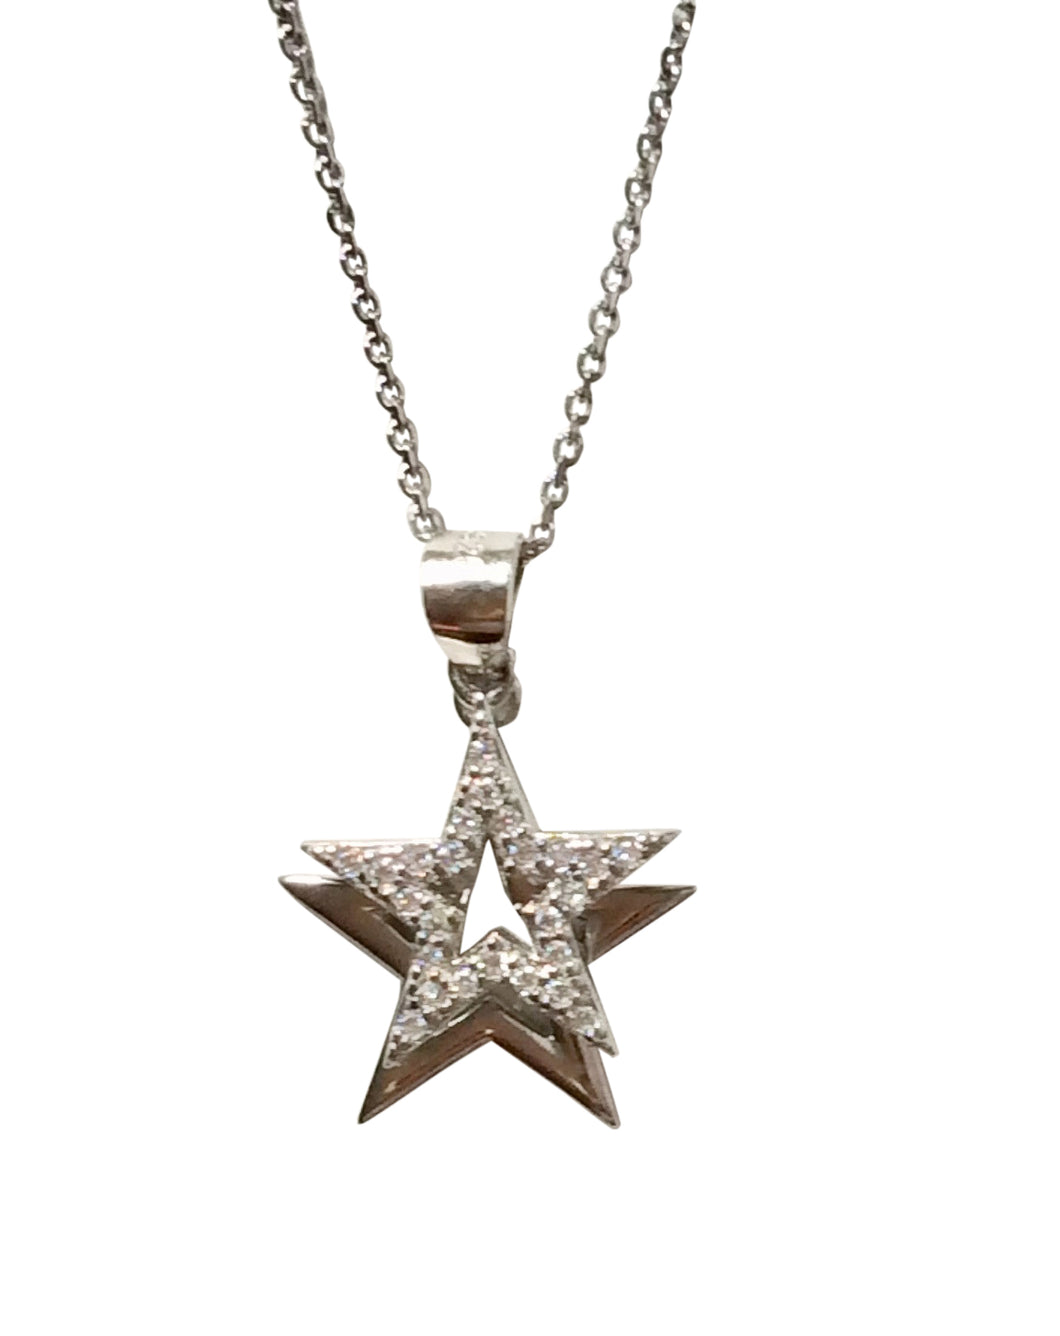 Sterling Silver Star double layered pendant on adjustable 18